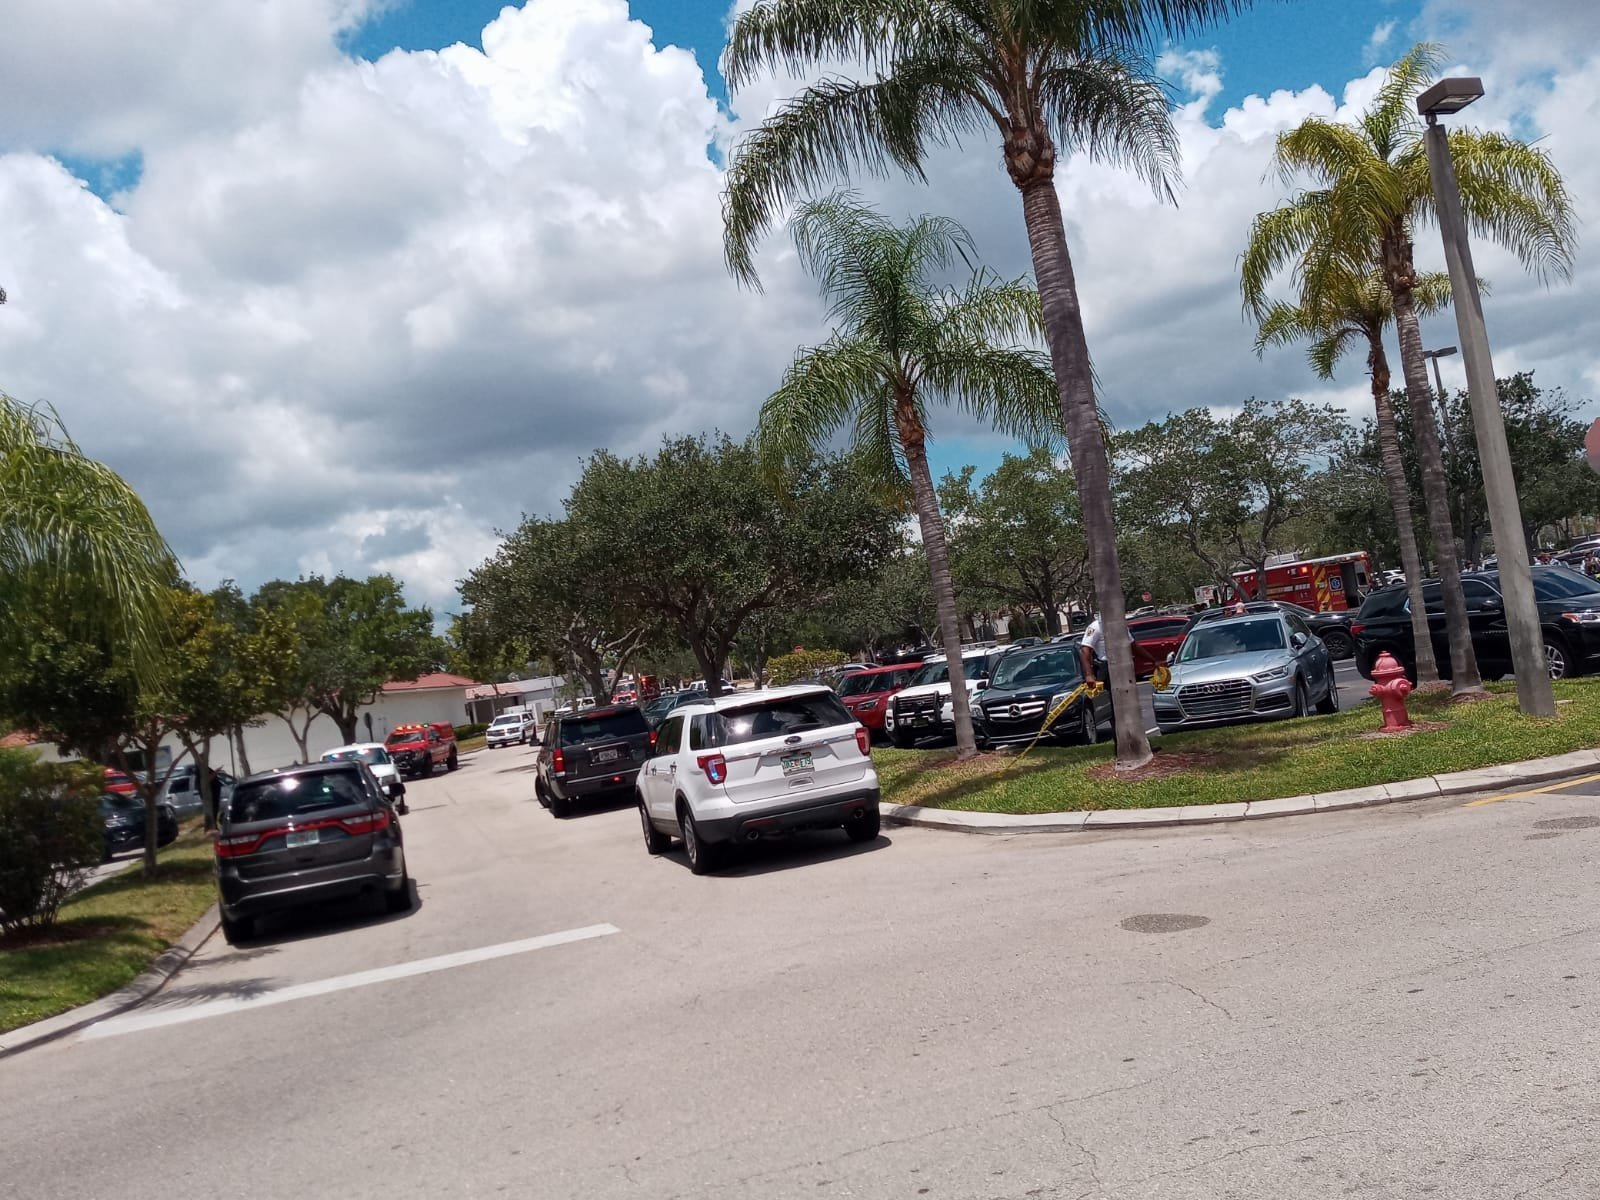 Two people were shot and killed inside a Publix in Royal Palm Beach, Florida, according to the Palm Beach County Sheriff's office. Police cars and fire trucks surround the area.